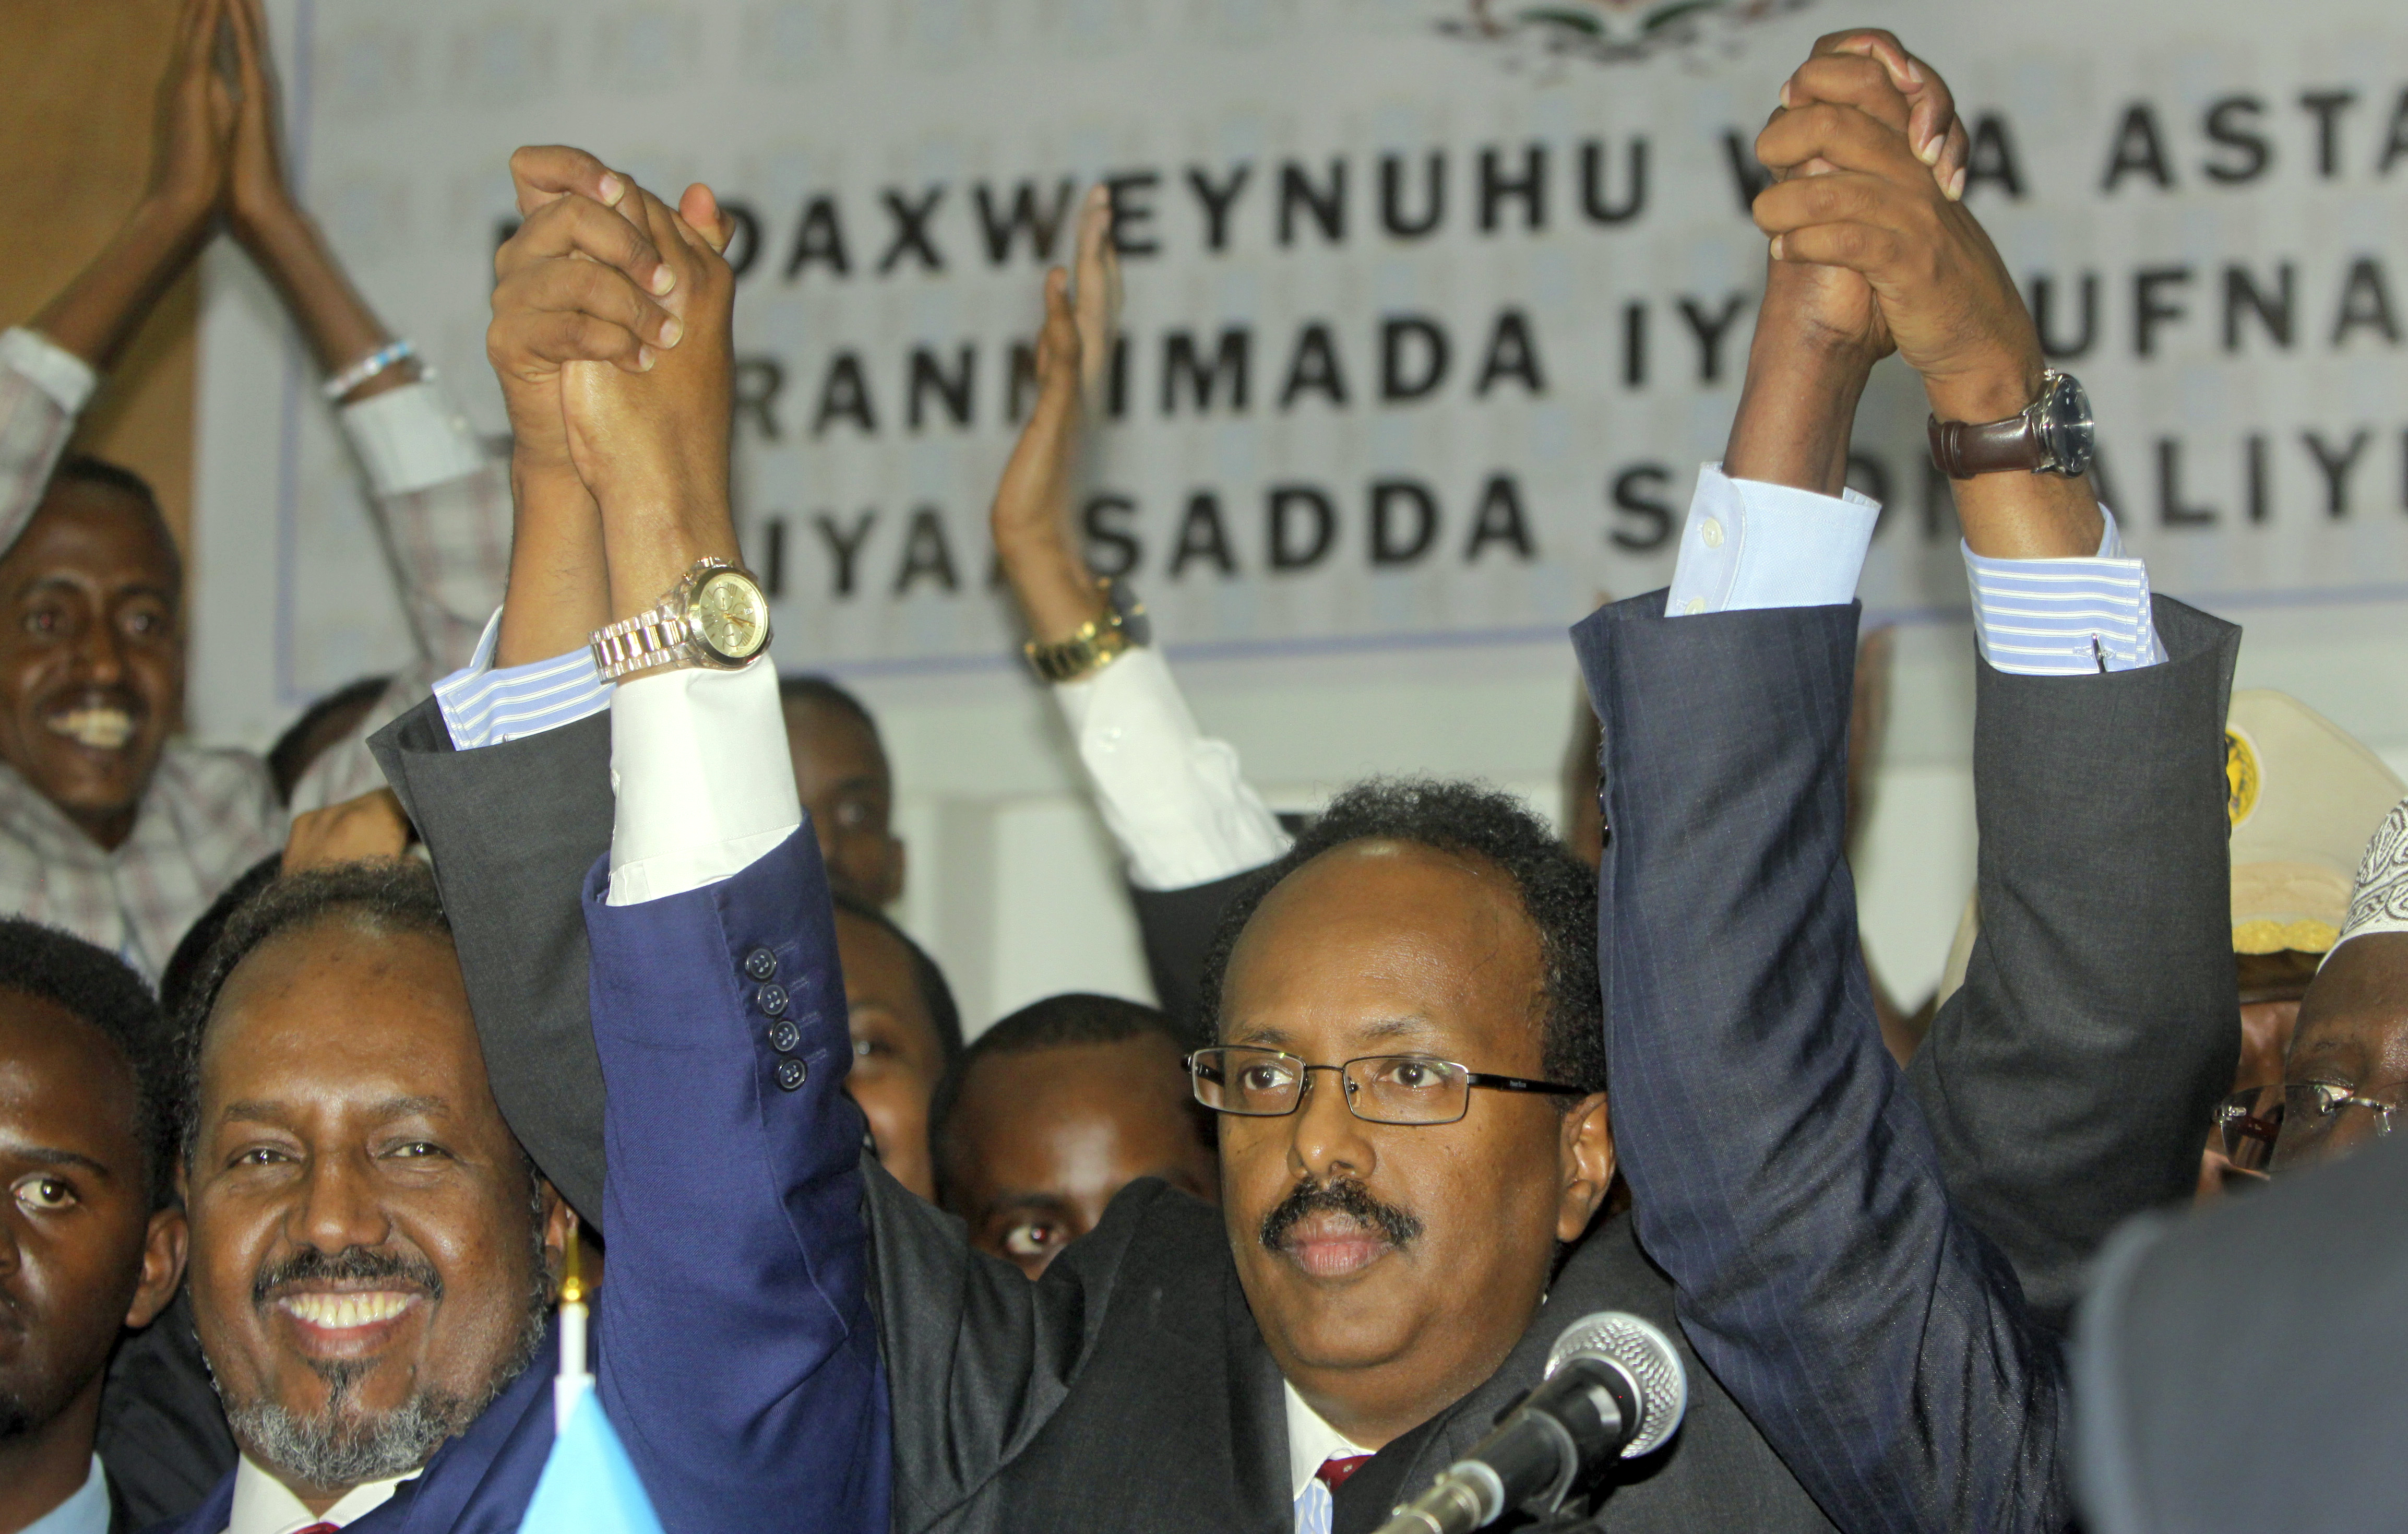 New Somali President Mohamed Abdullahi Farmajo (C) joins hands with incumbent President Hassan Sheikh Mohamud (L) as he celebrates winning the election and taking office in Mogadishu, Somalia on Feb. 8, 2017. (AP Photo/Farah Abdi Warsameh)